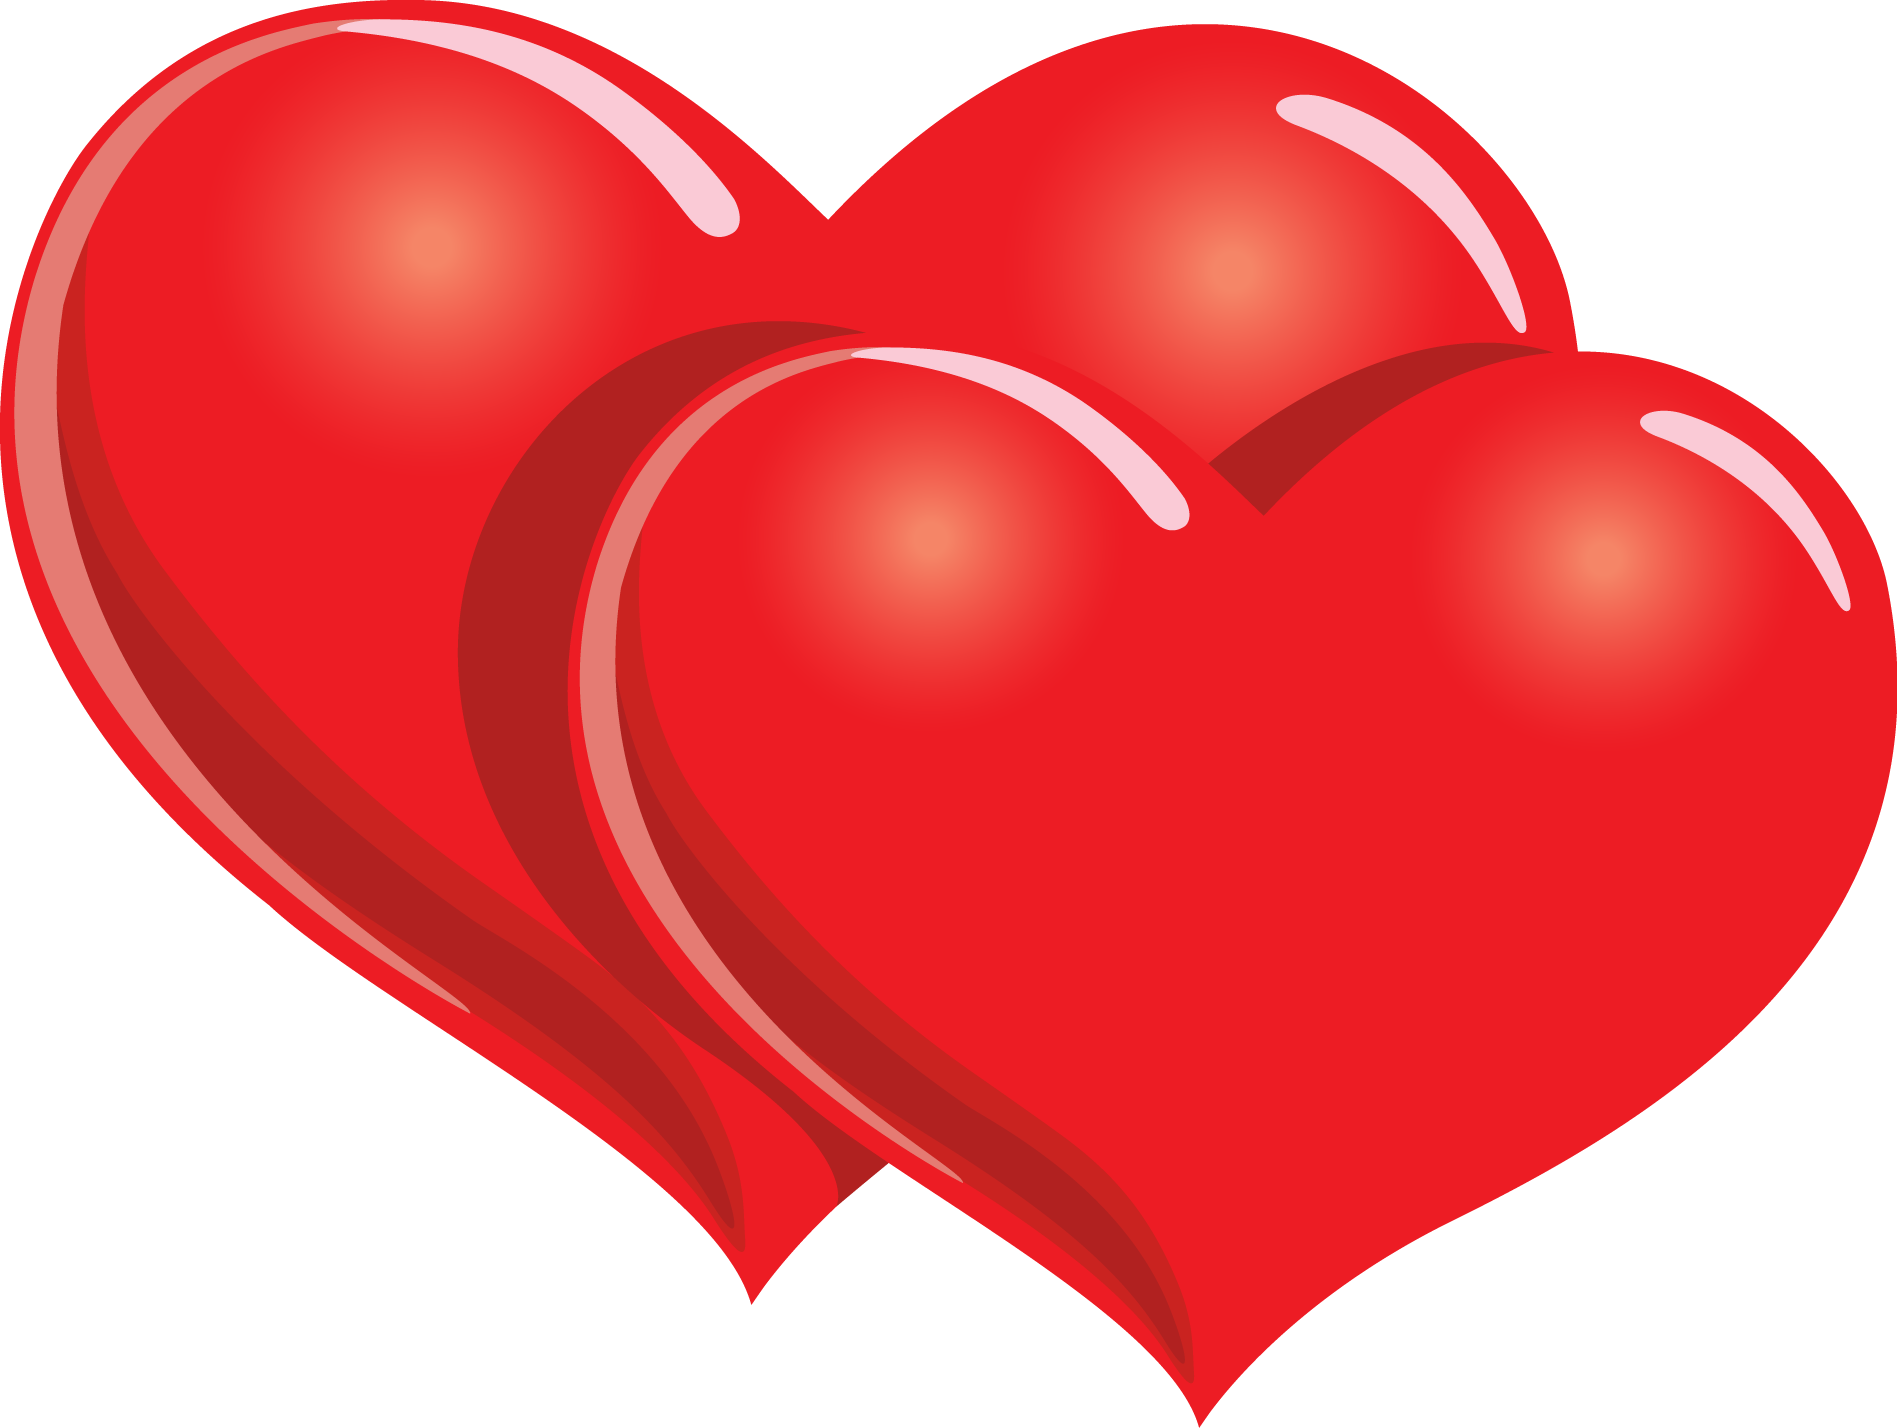 2 heart inside one another clipart clipart How About Your Heart? – St. Helens Baptist Church clipart